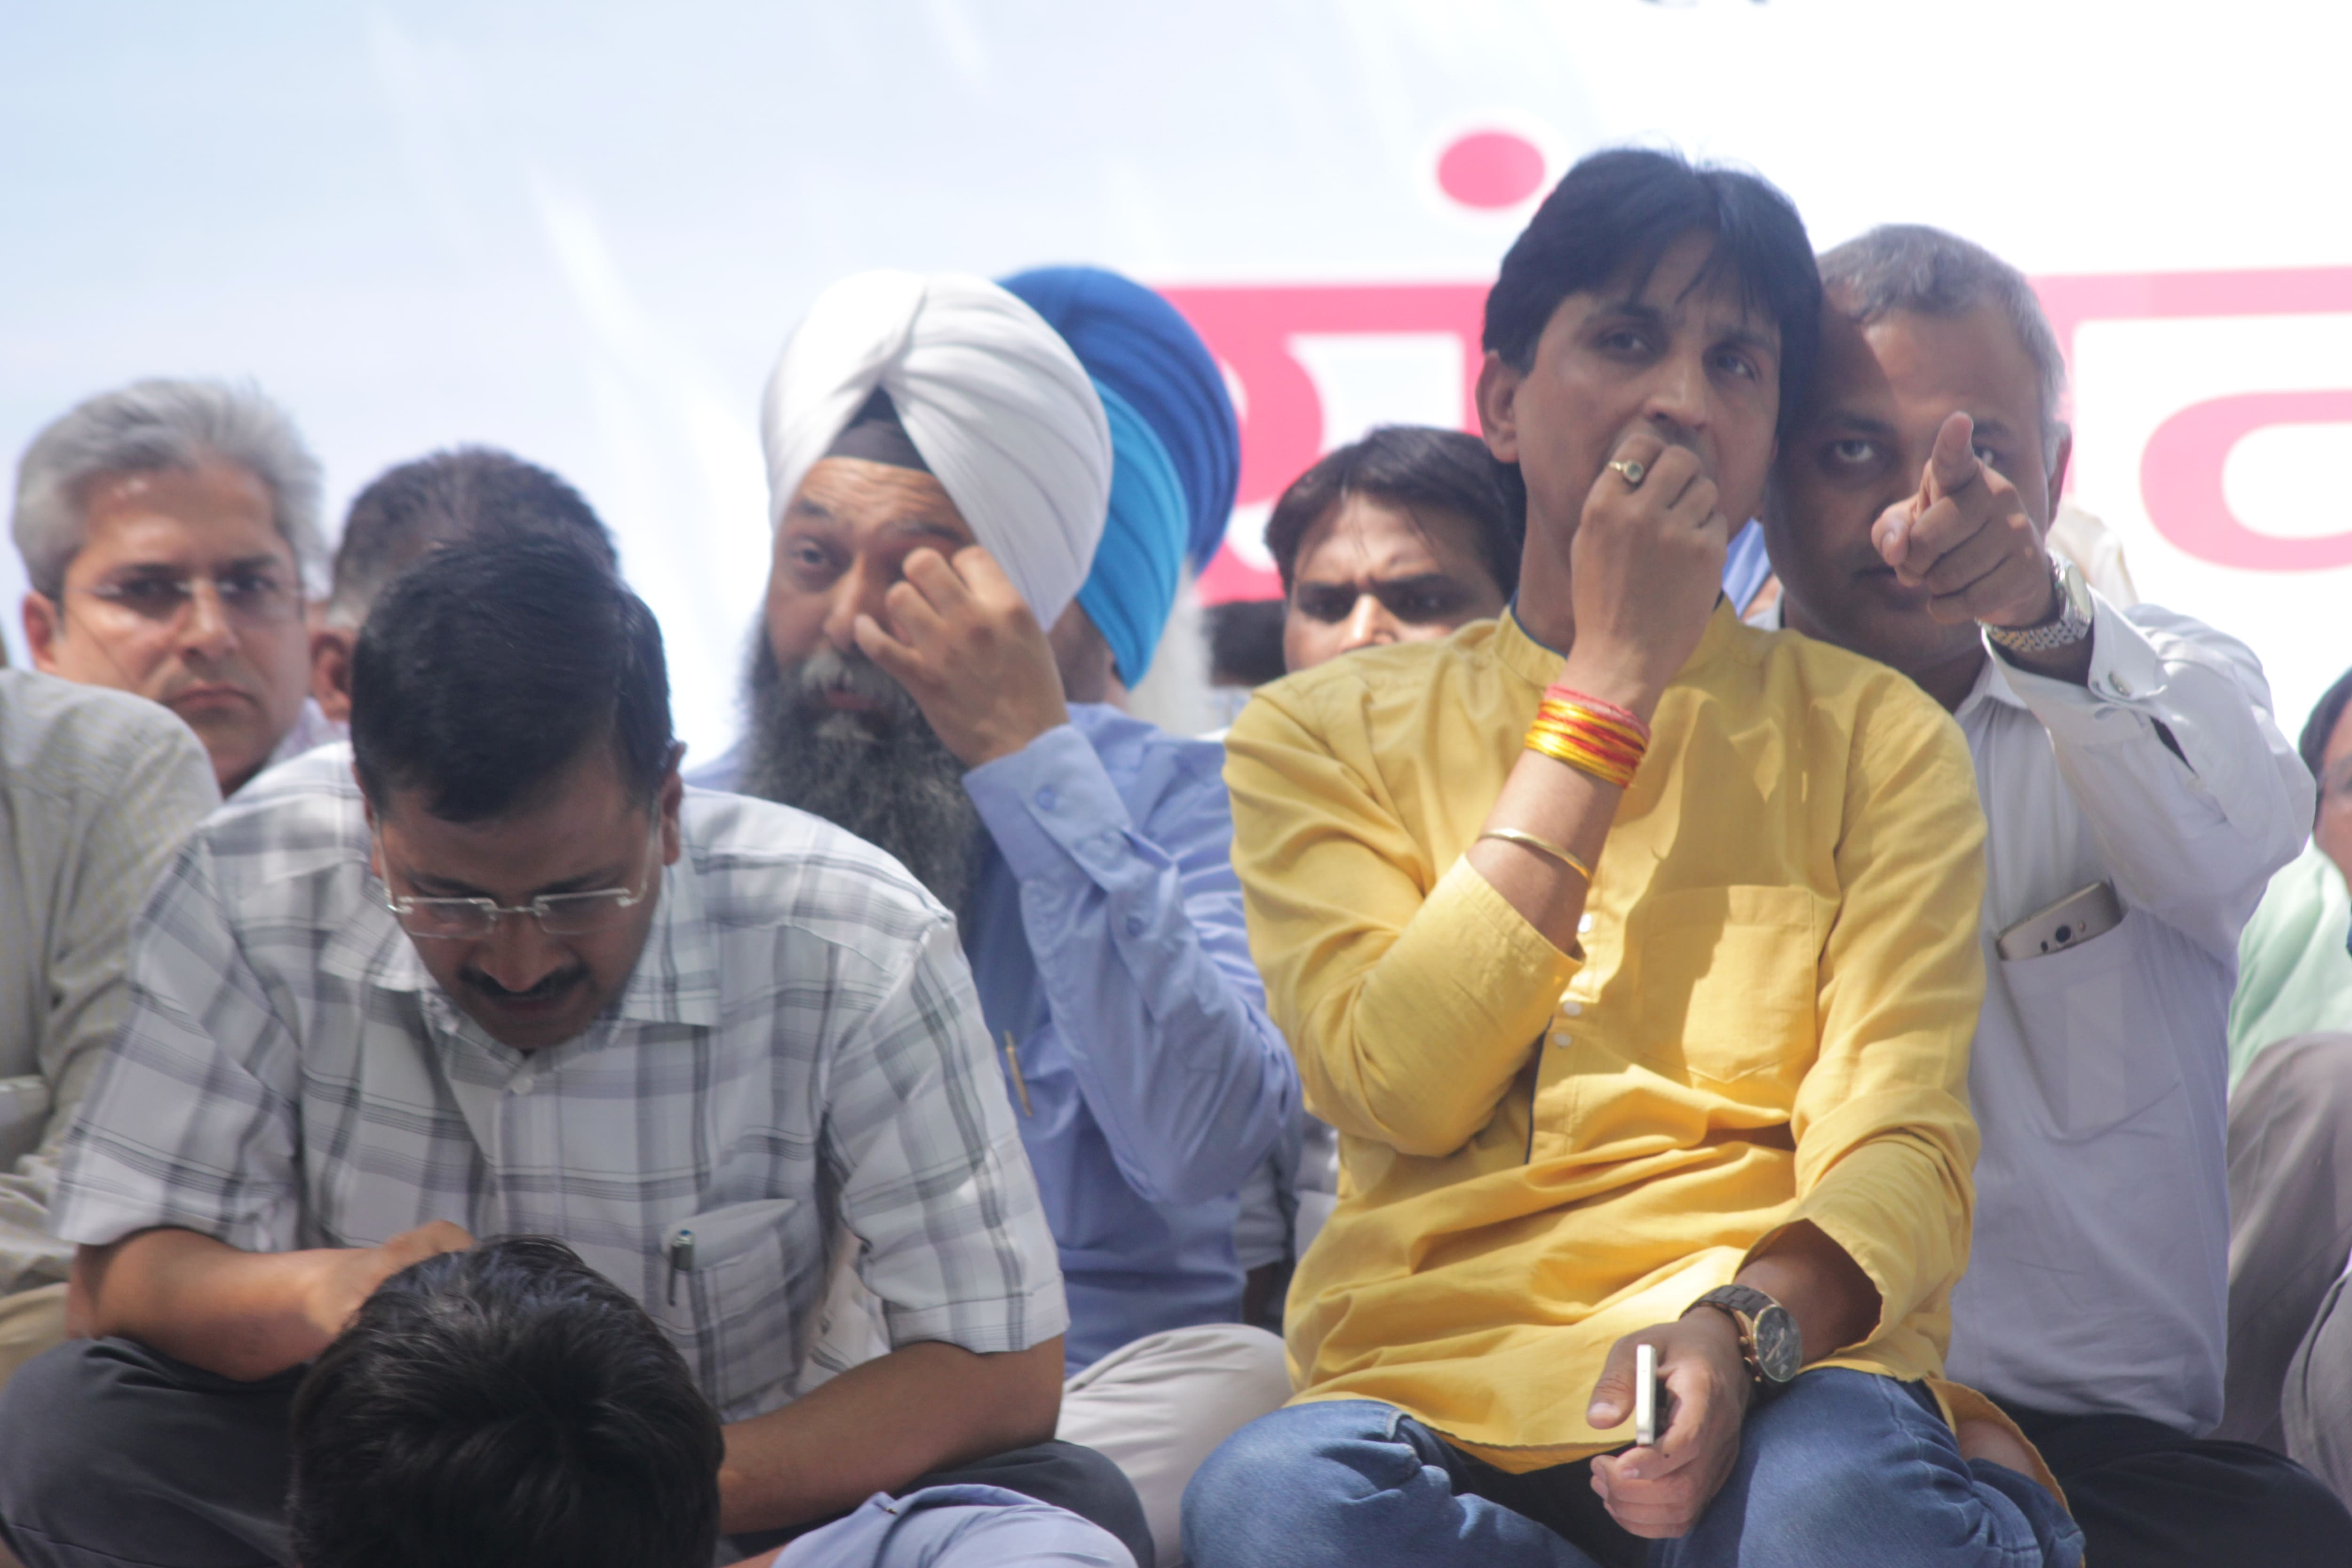 AAP would have sacked Amanatullah if such allegations were levelled against Arvind Kejriwal: Kumar Vishwas